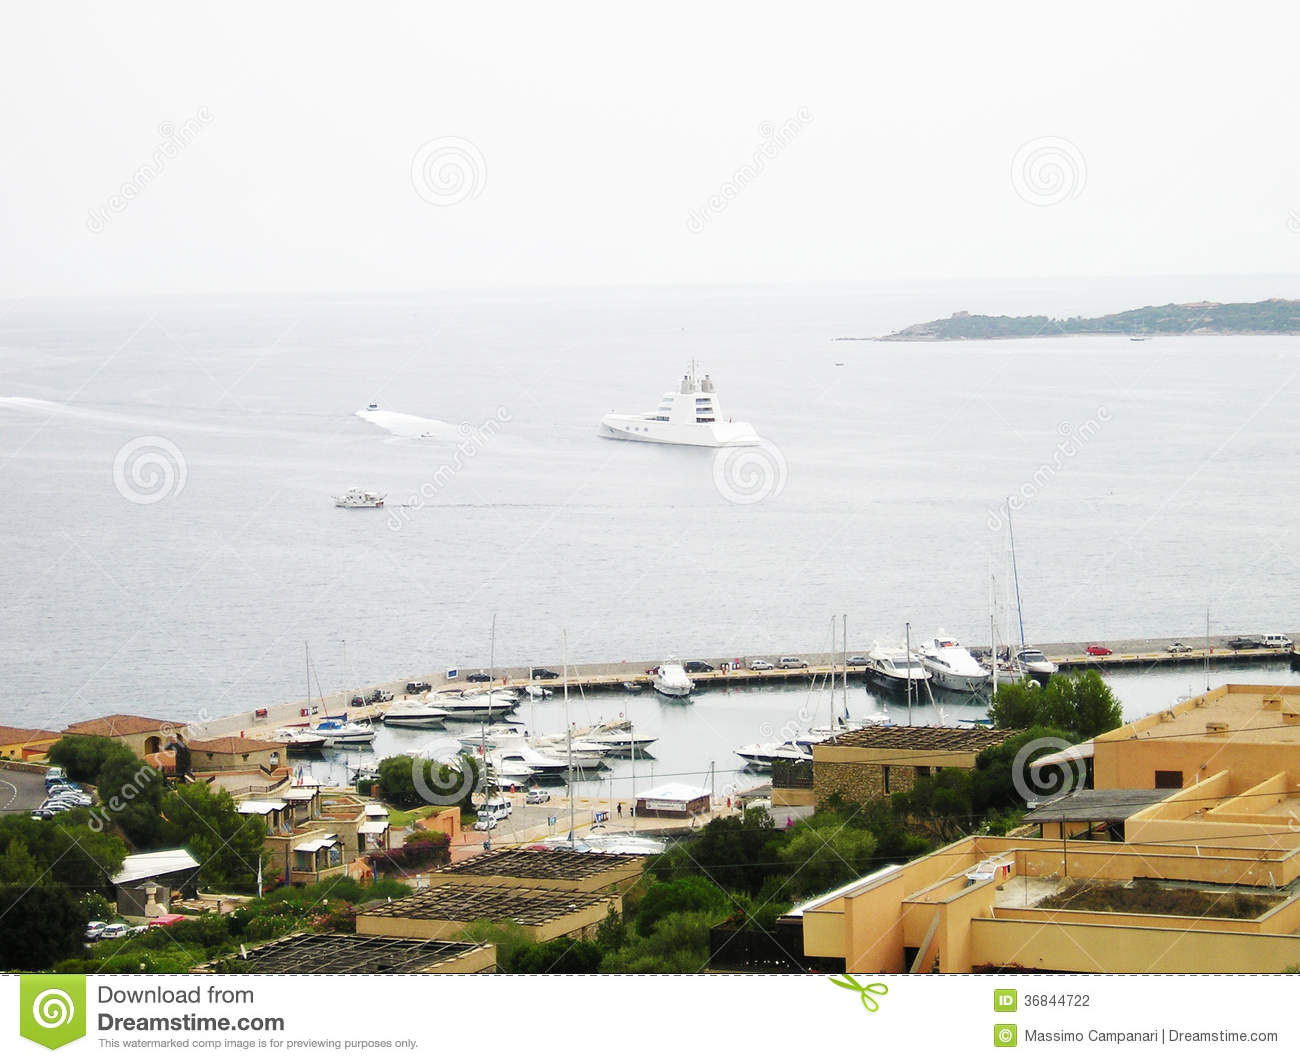 Marina Di Portisco Italy  city pictures gallery : Gigayacht A sardinia marina di portisco italy.